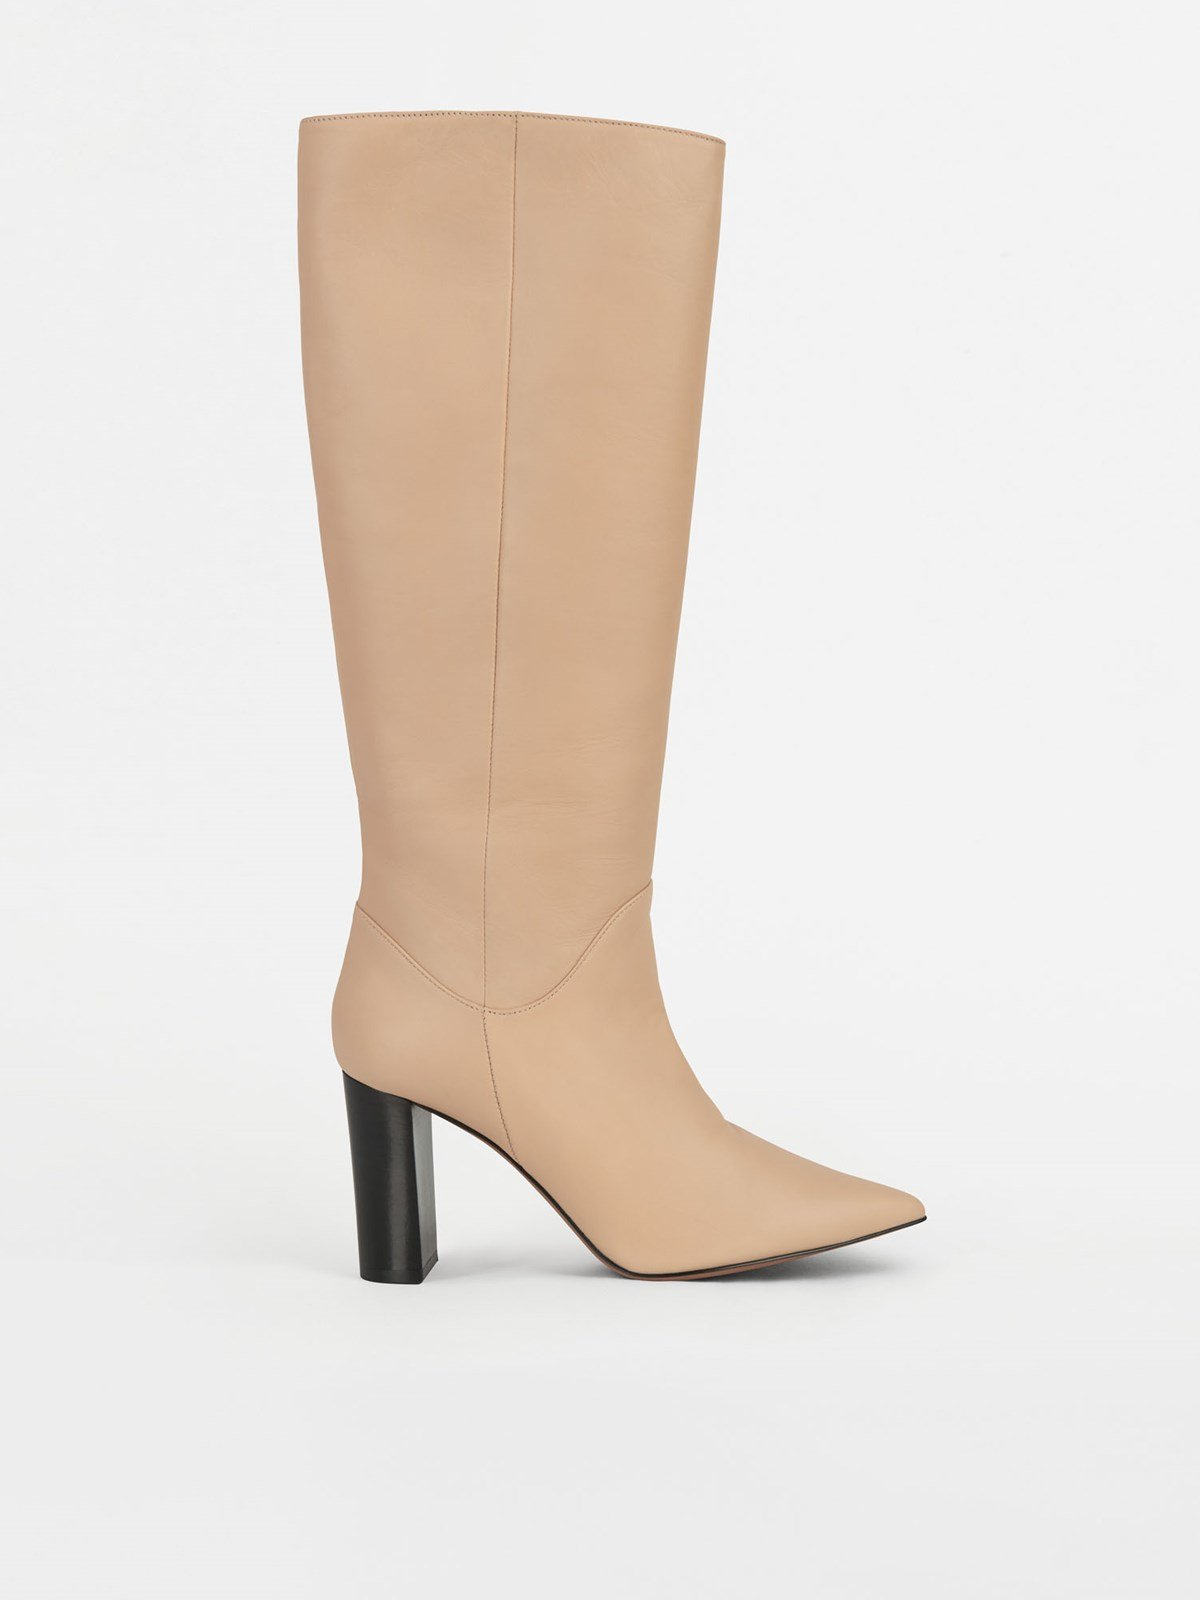 Gaeta Oat Knee High Boots